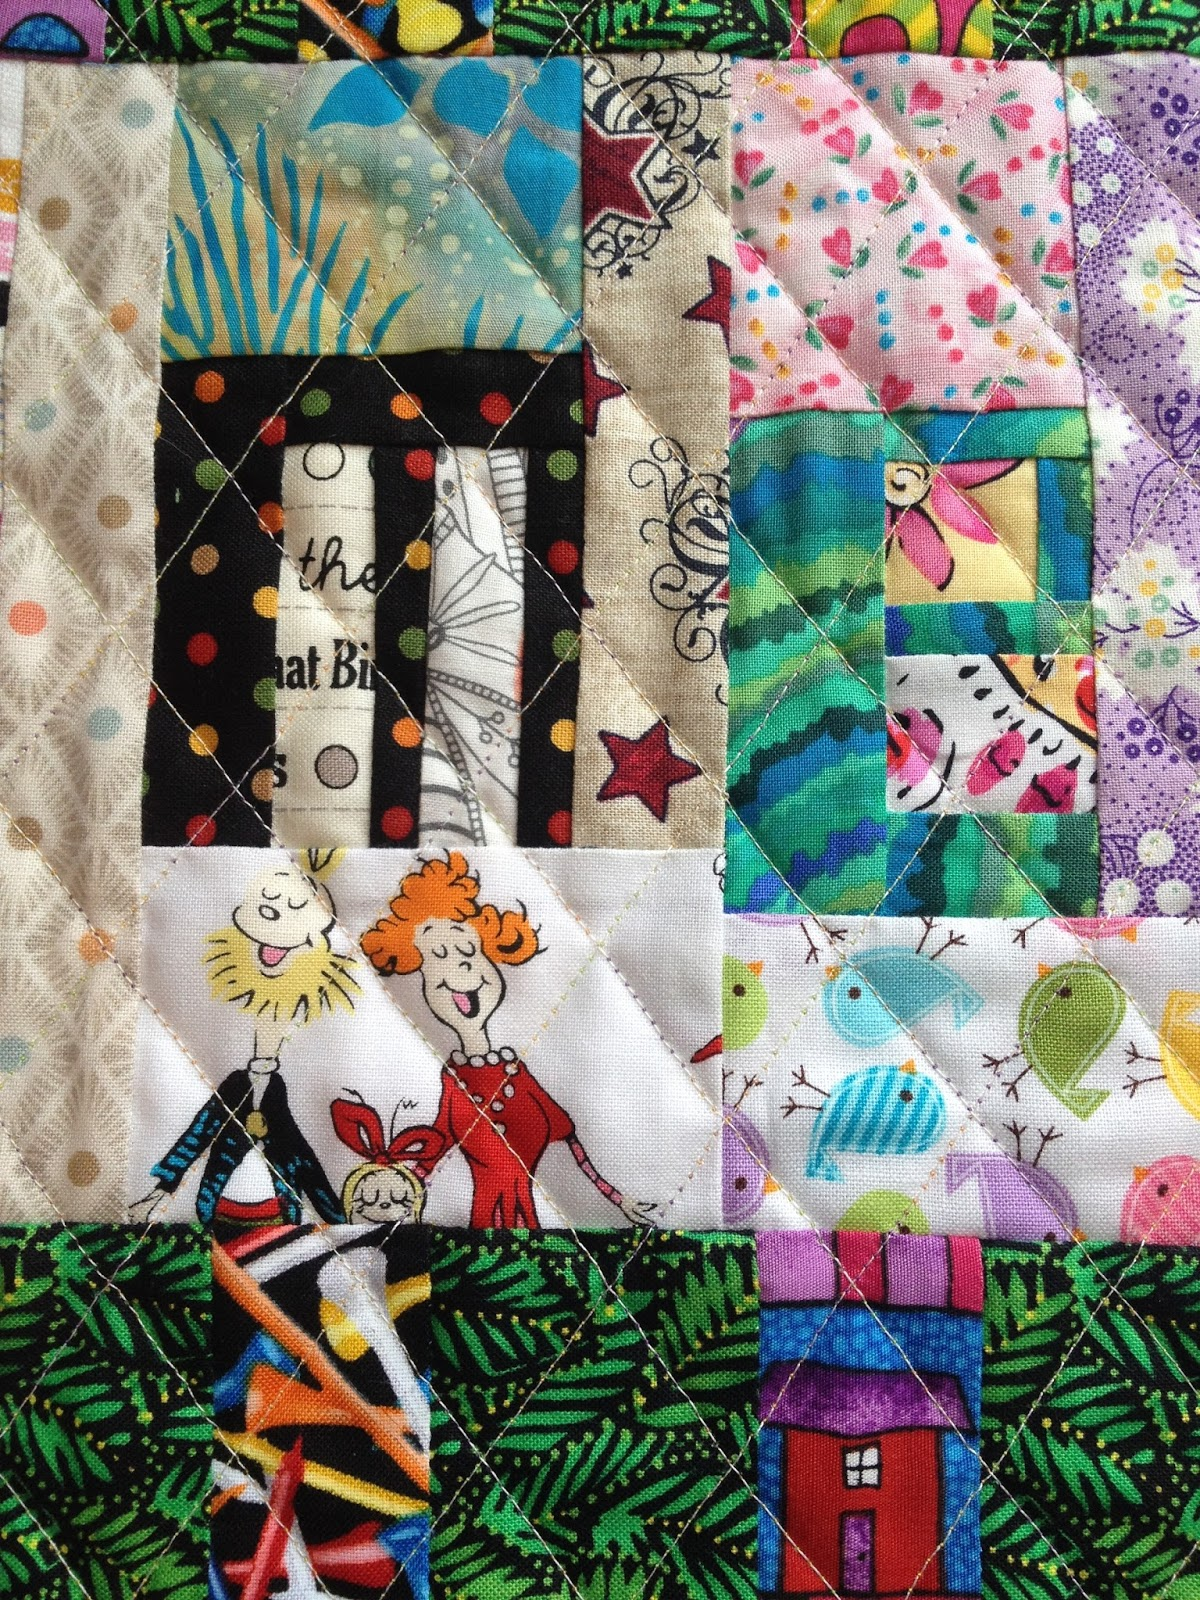 Susan S Quilt Creations Word Quilt For 2016 Quot Re Home Quot